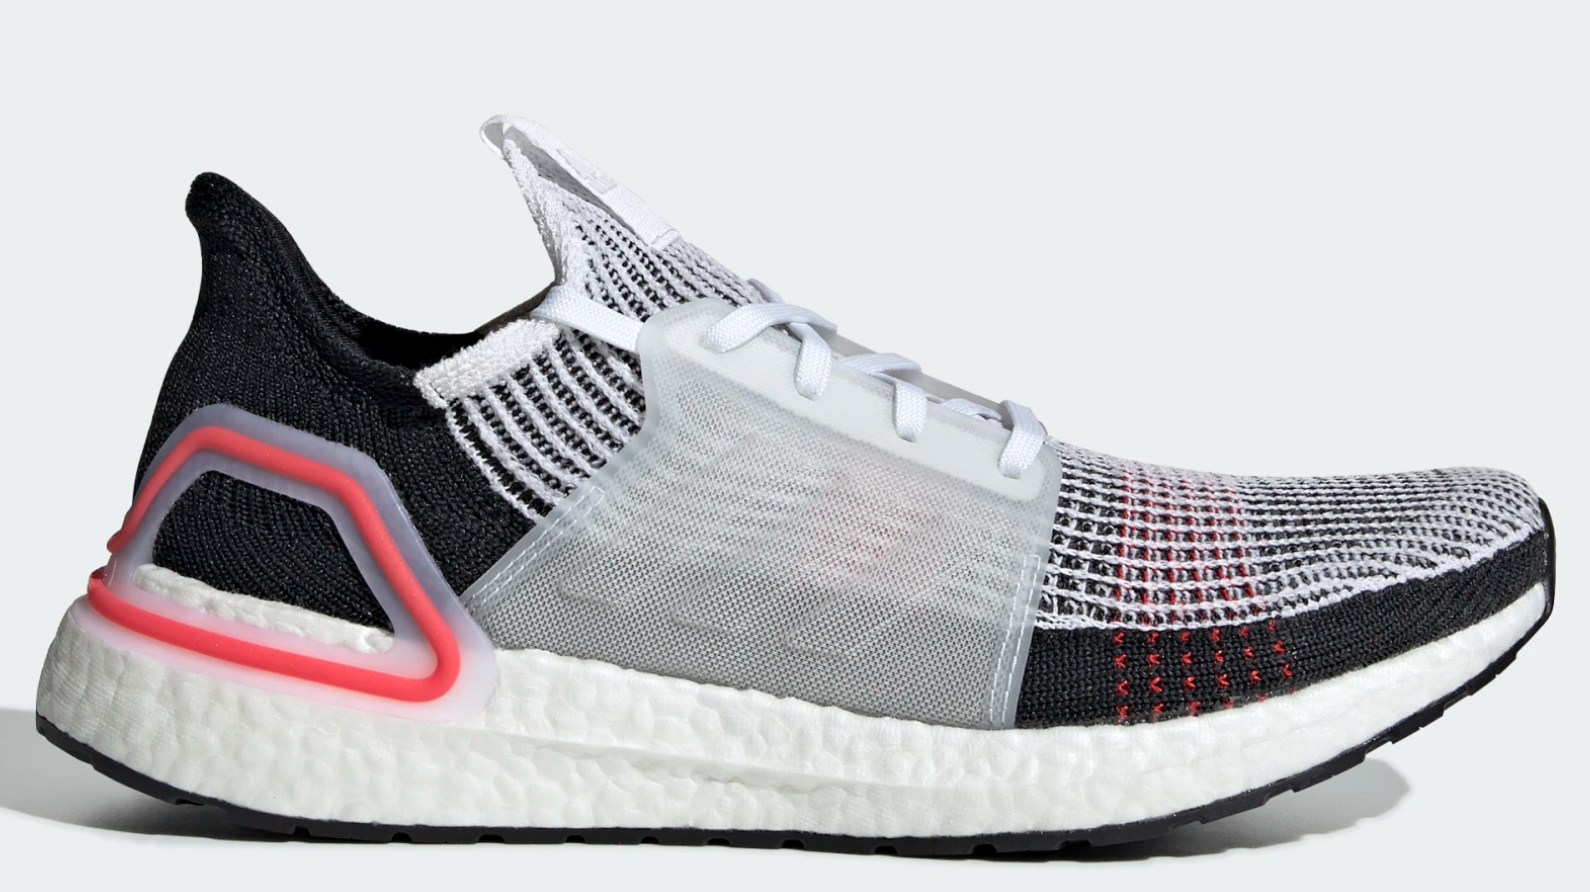 Adidas UltraBoost Shoes 2019 | Coolest Ultra Boost Shoes